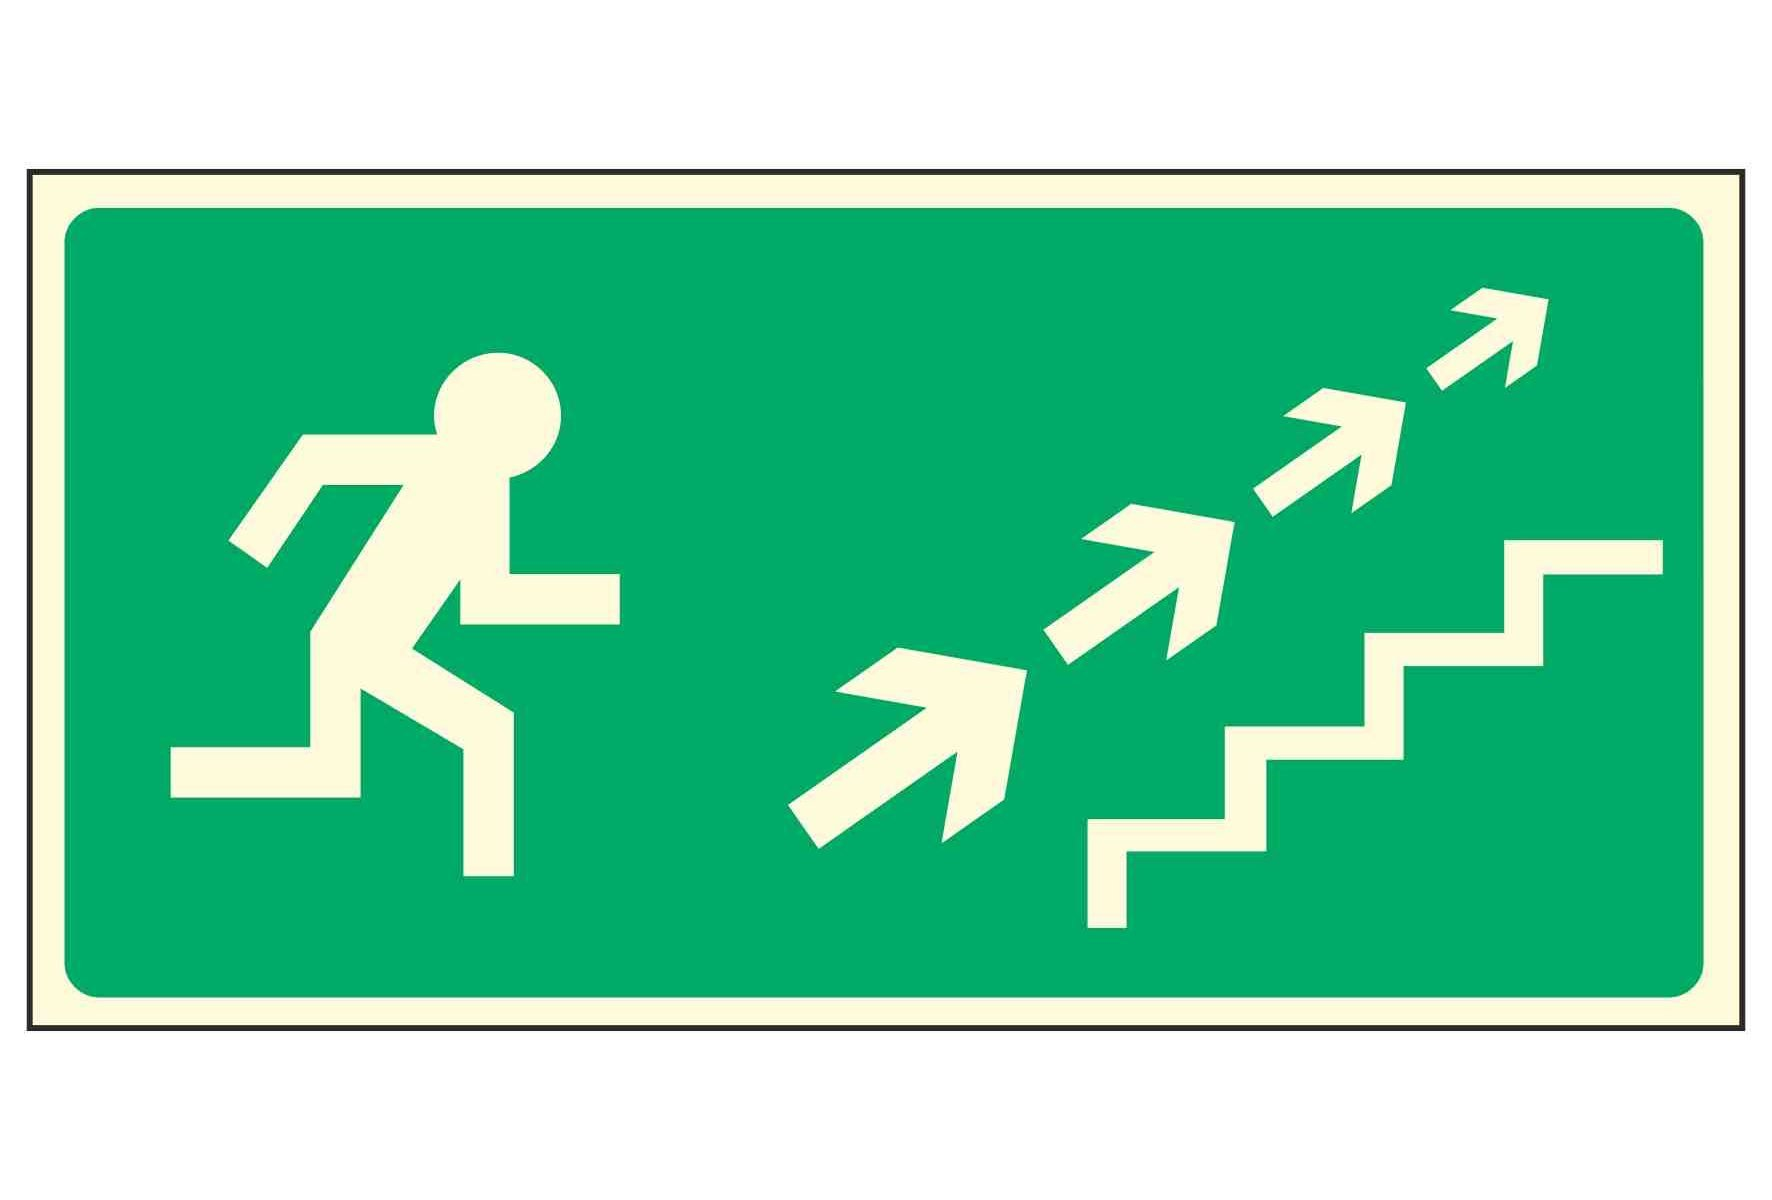 Running Man Right / Stairs Up Right Arrows - EEC 92/58